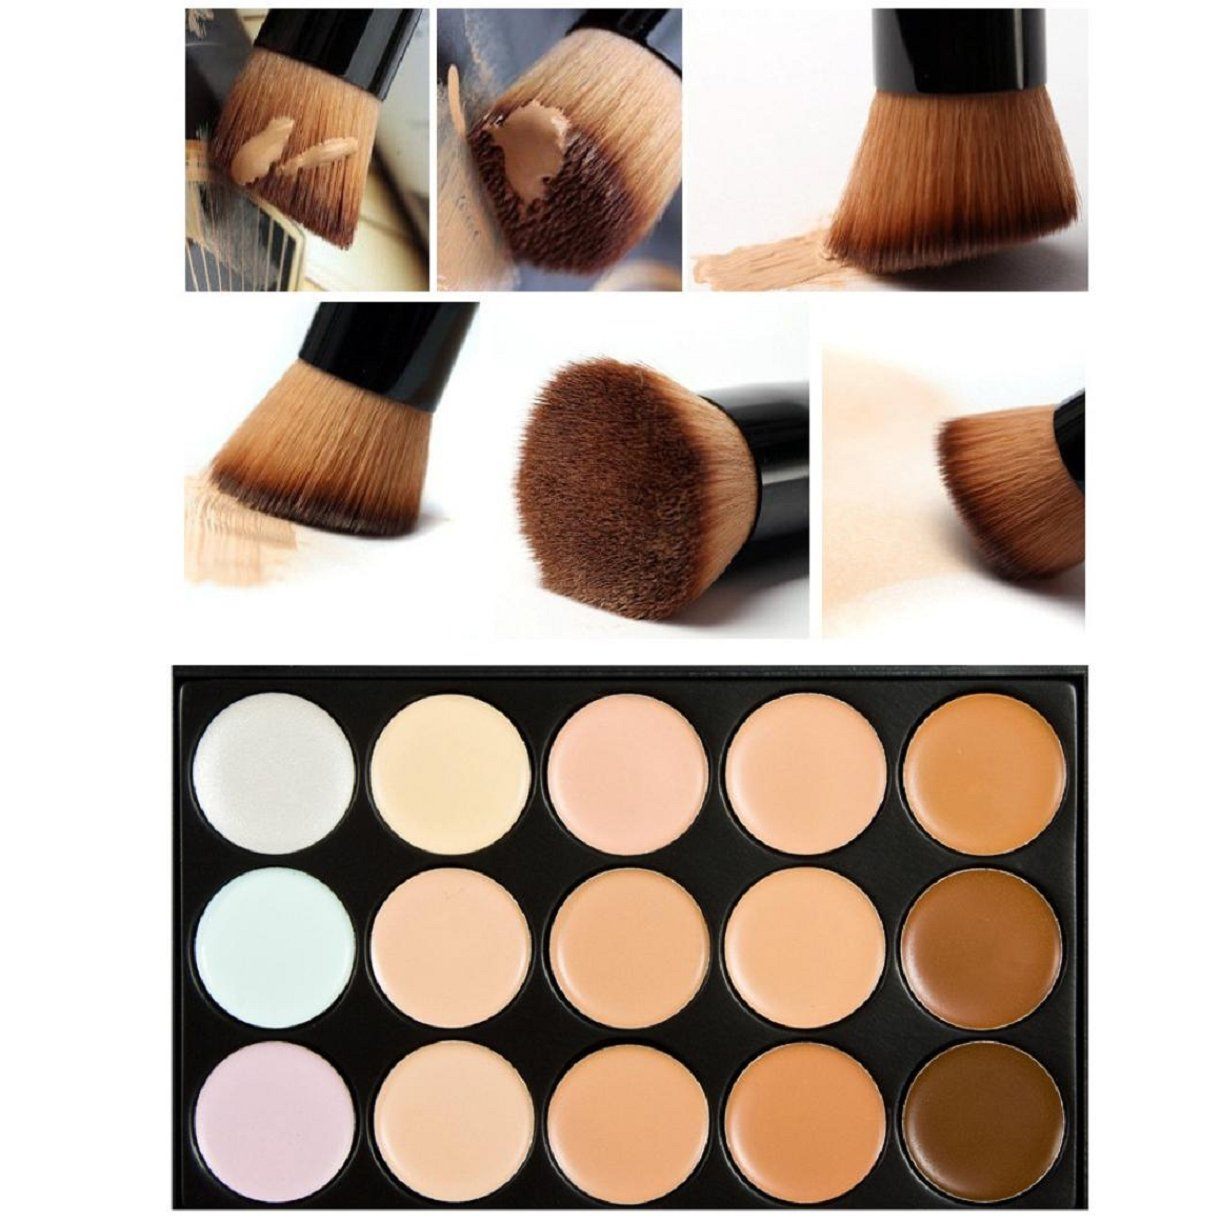 Lookatool Professional 15 Color Concealer Camouflage Makeup Palette With a Brush AK3-AT1-GL-M-X